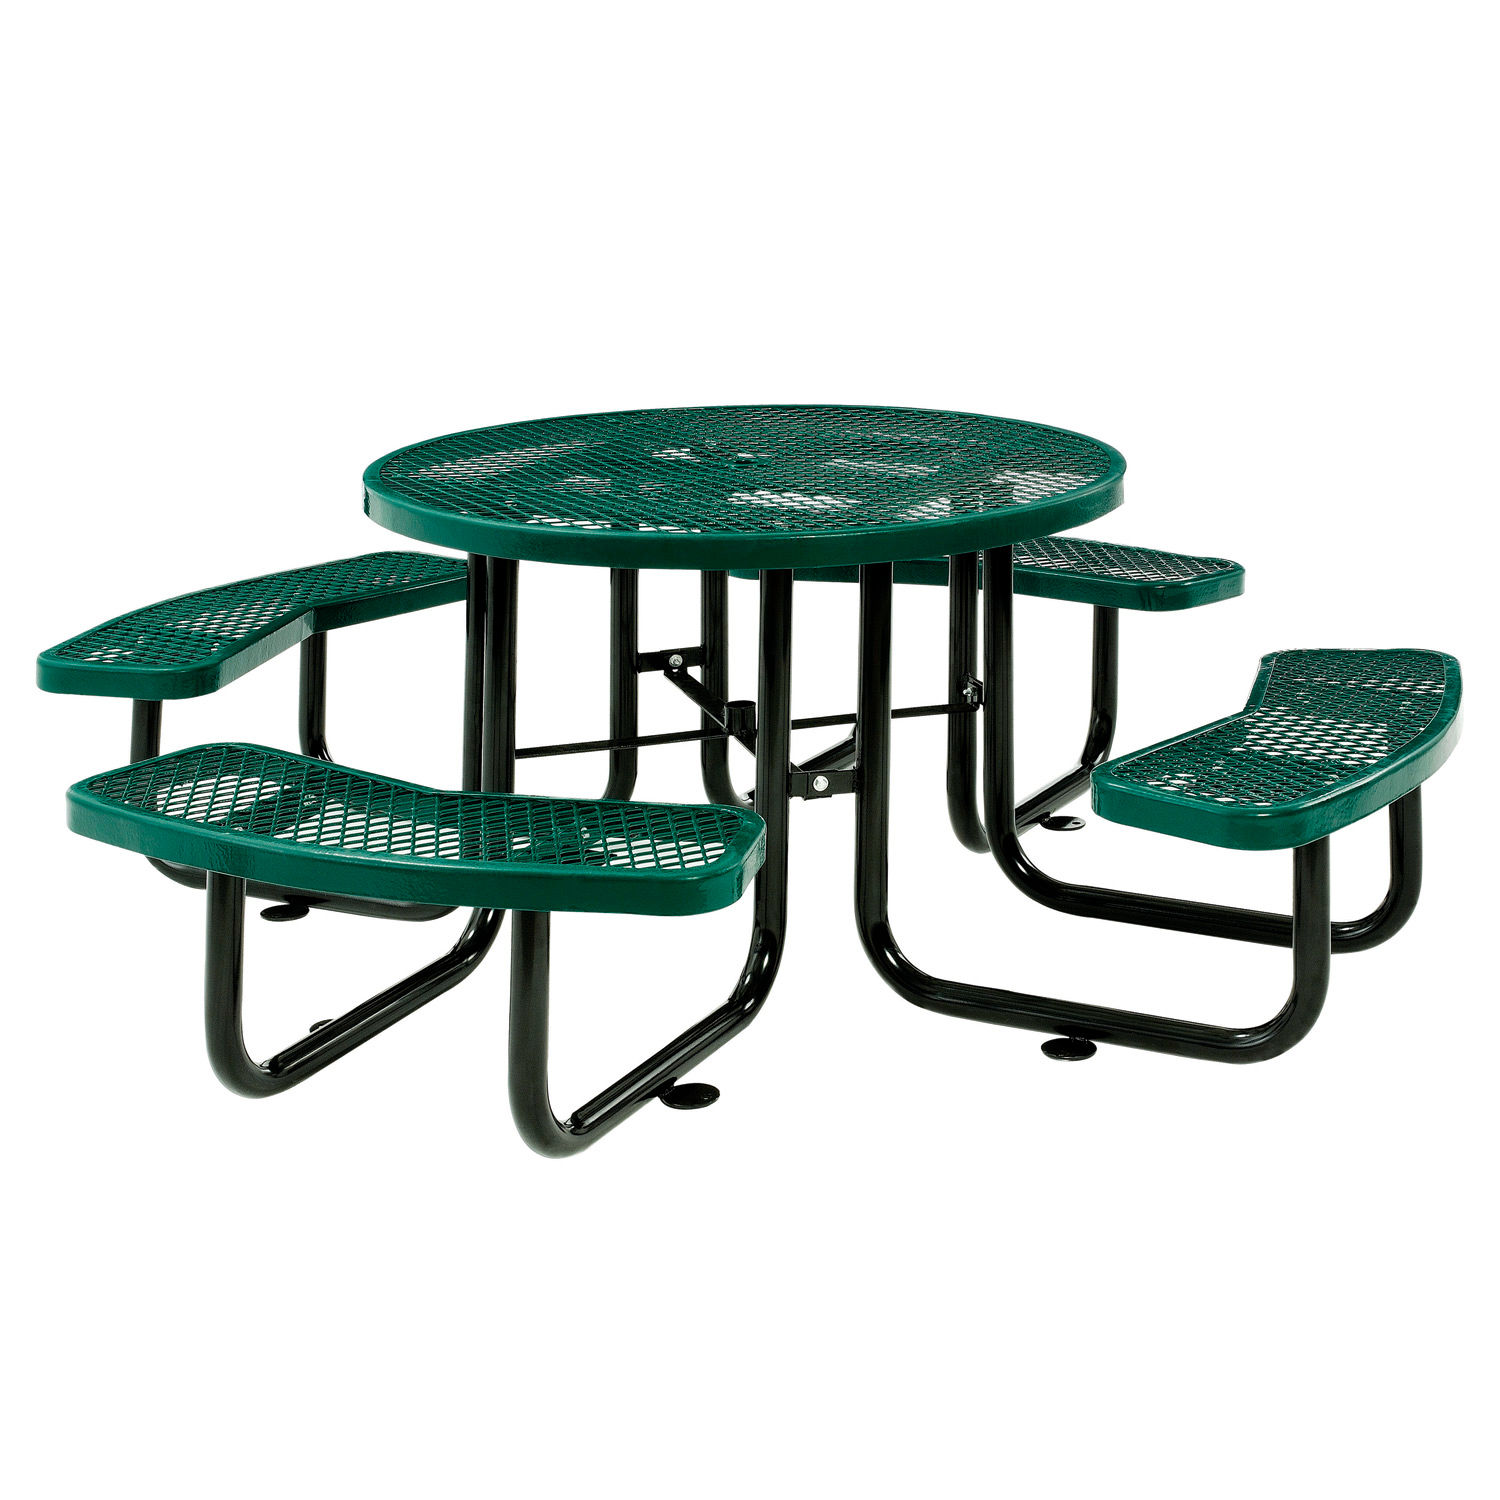 Terrific Benches Picnic Tables Picnic Tables Steel 46Quot Onthecornerstone Fun Painted Chair Ideas Images Onthecornerstoneorg